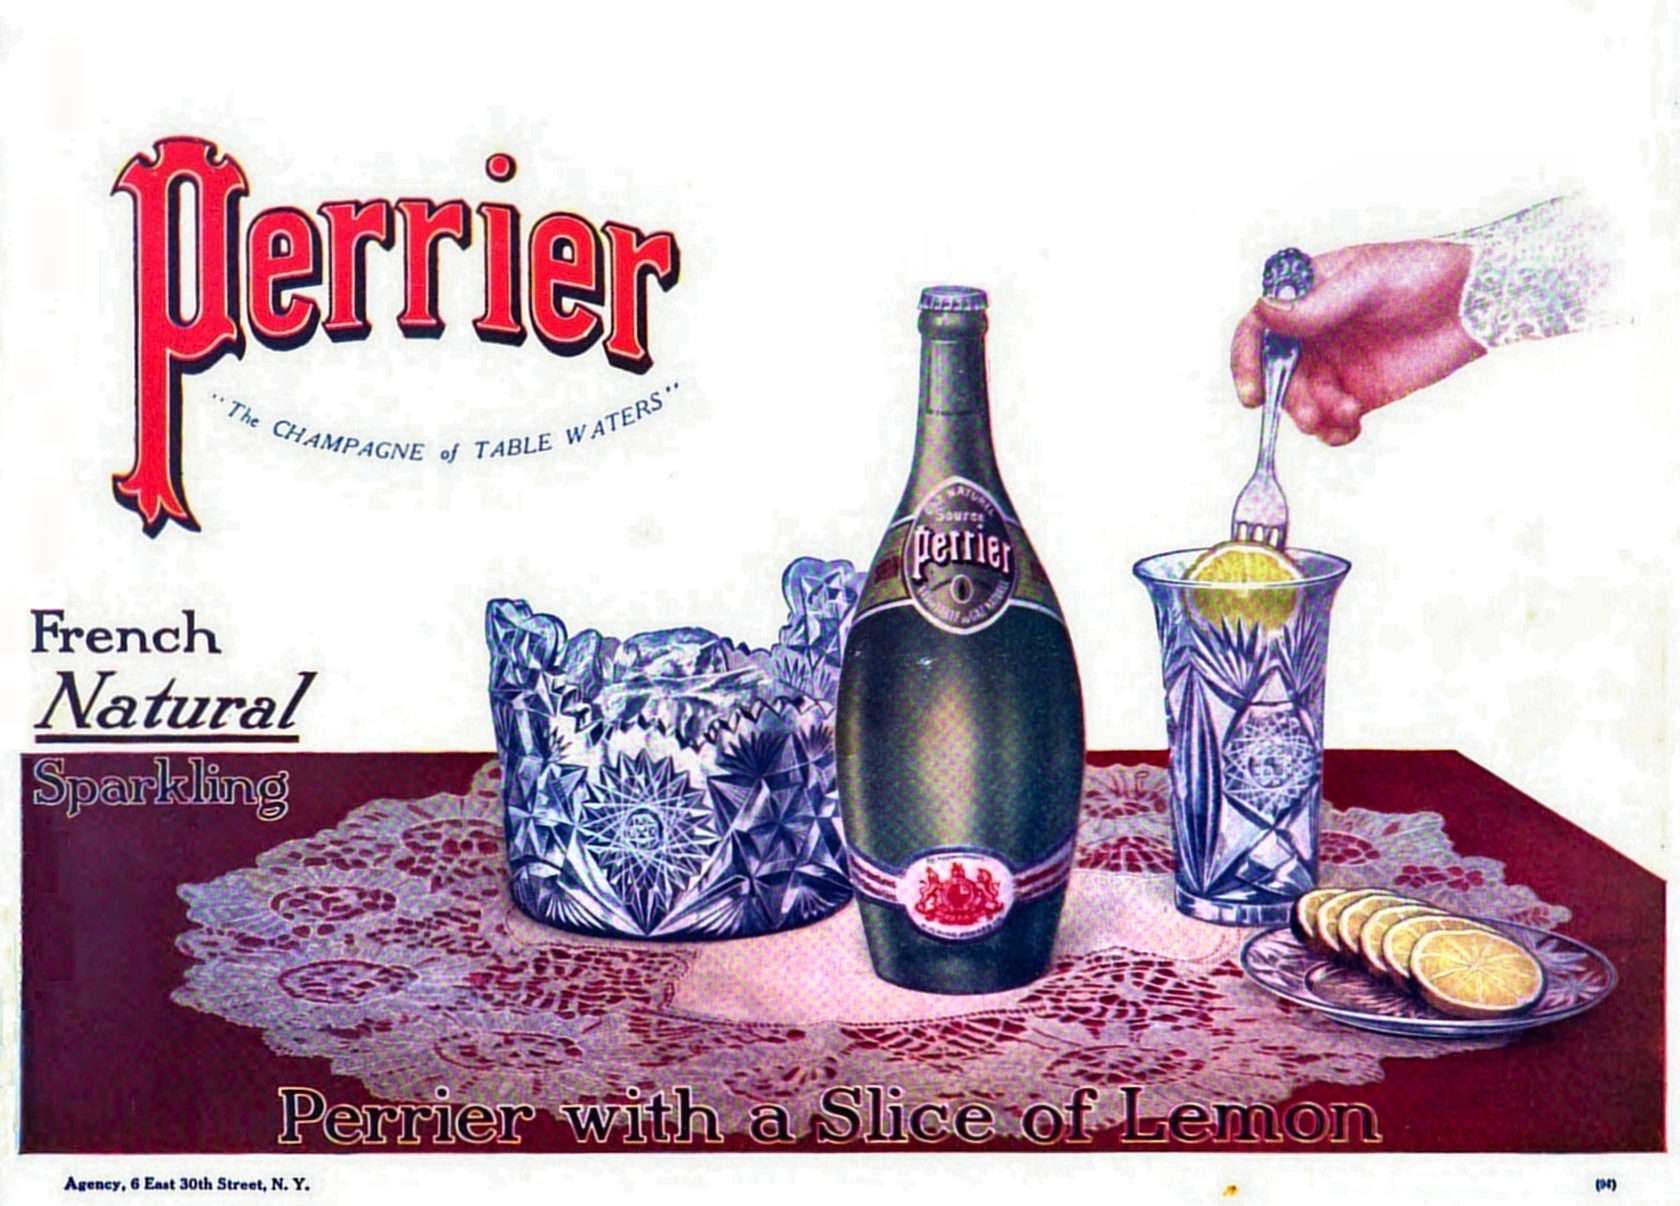 Perrier French Natural Sparkling Advertisement 1910